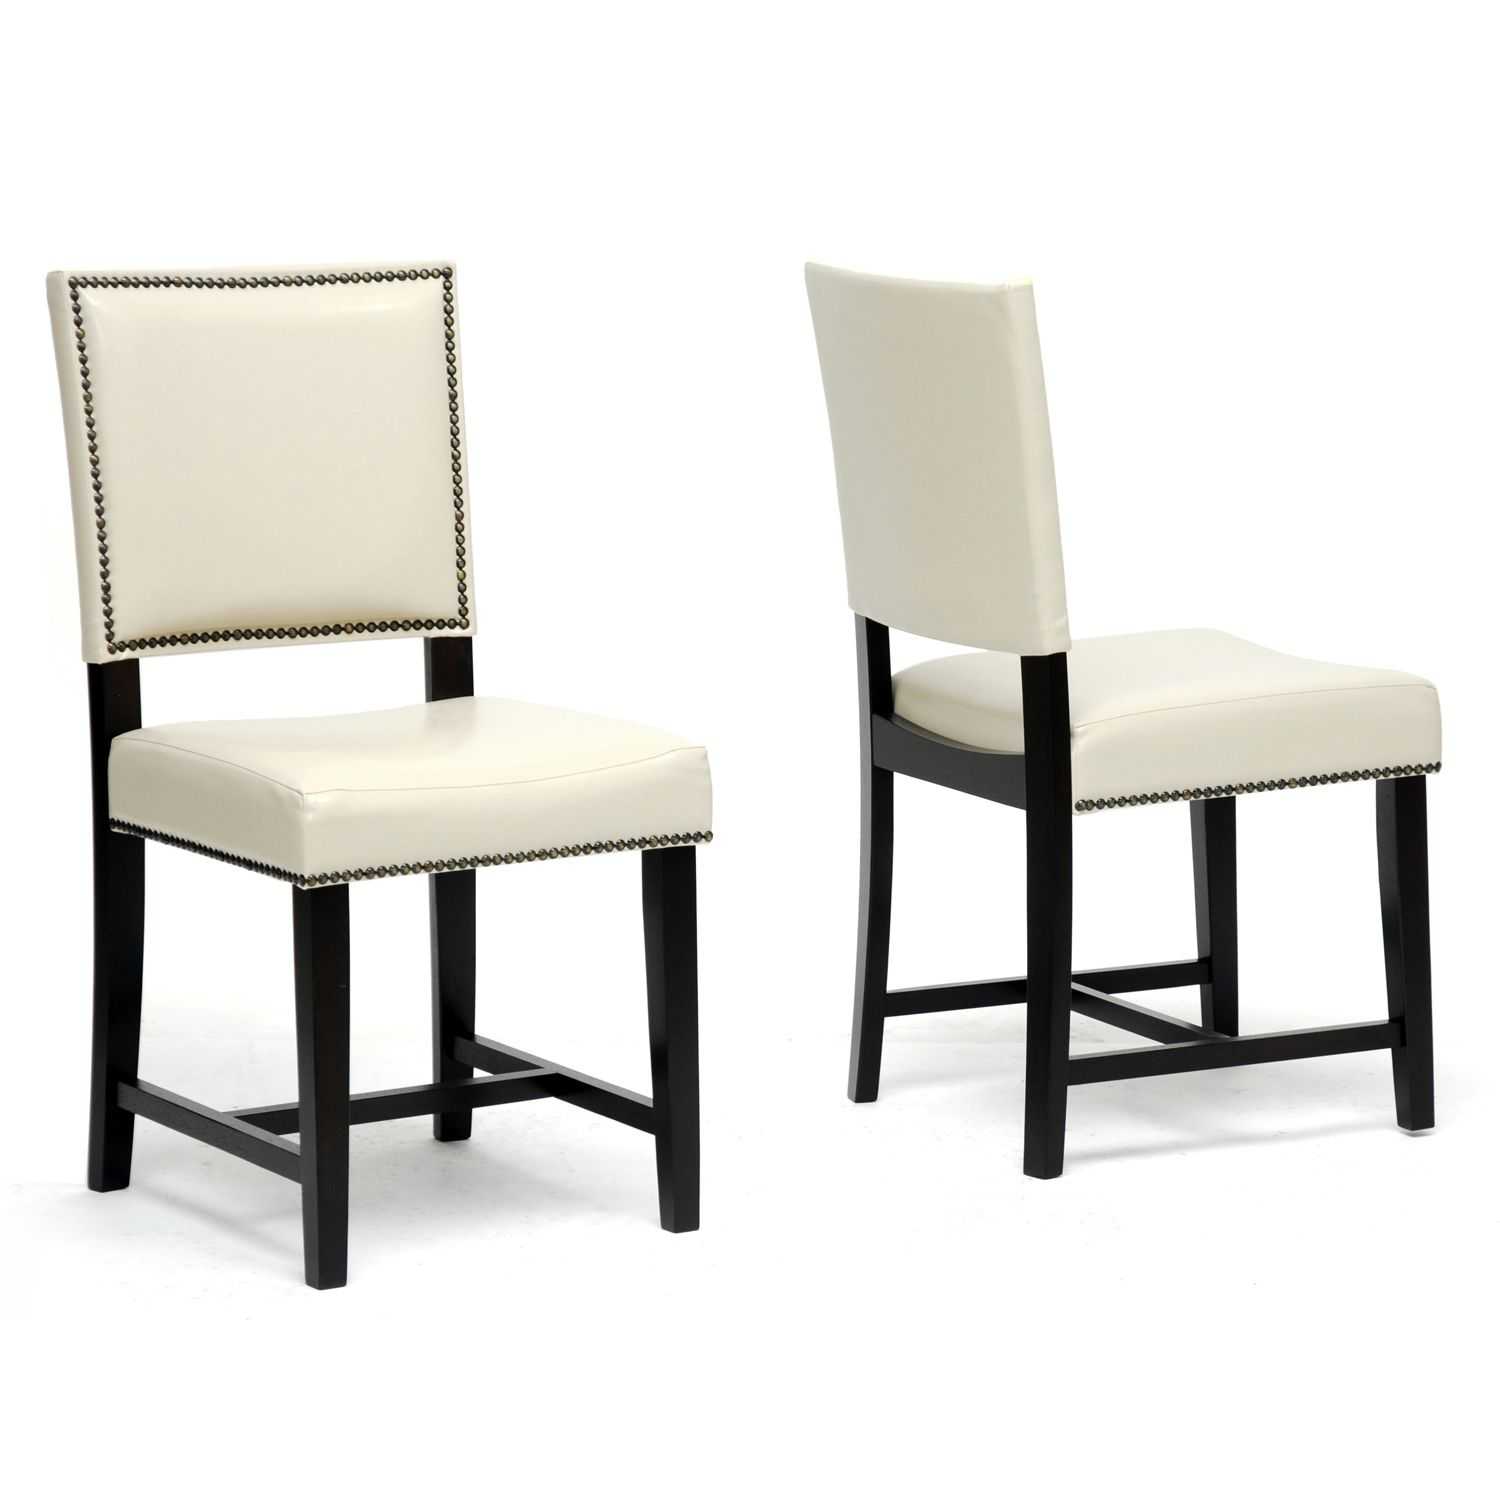 Baxton Studio Nottingham Cream Faux Leather Modern Dining Chairs (Set Of 2)  By Baxton Studio